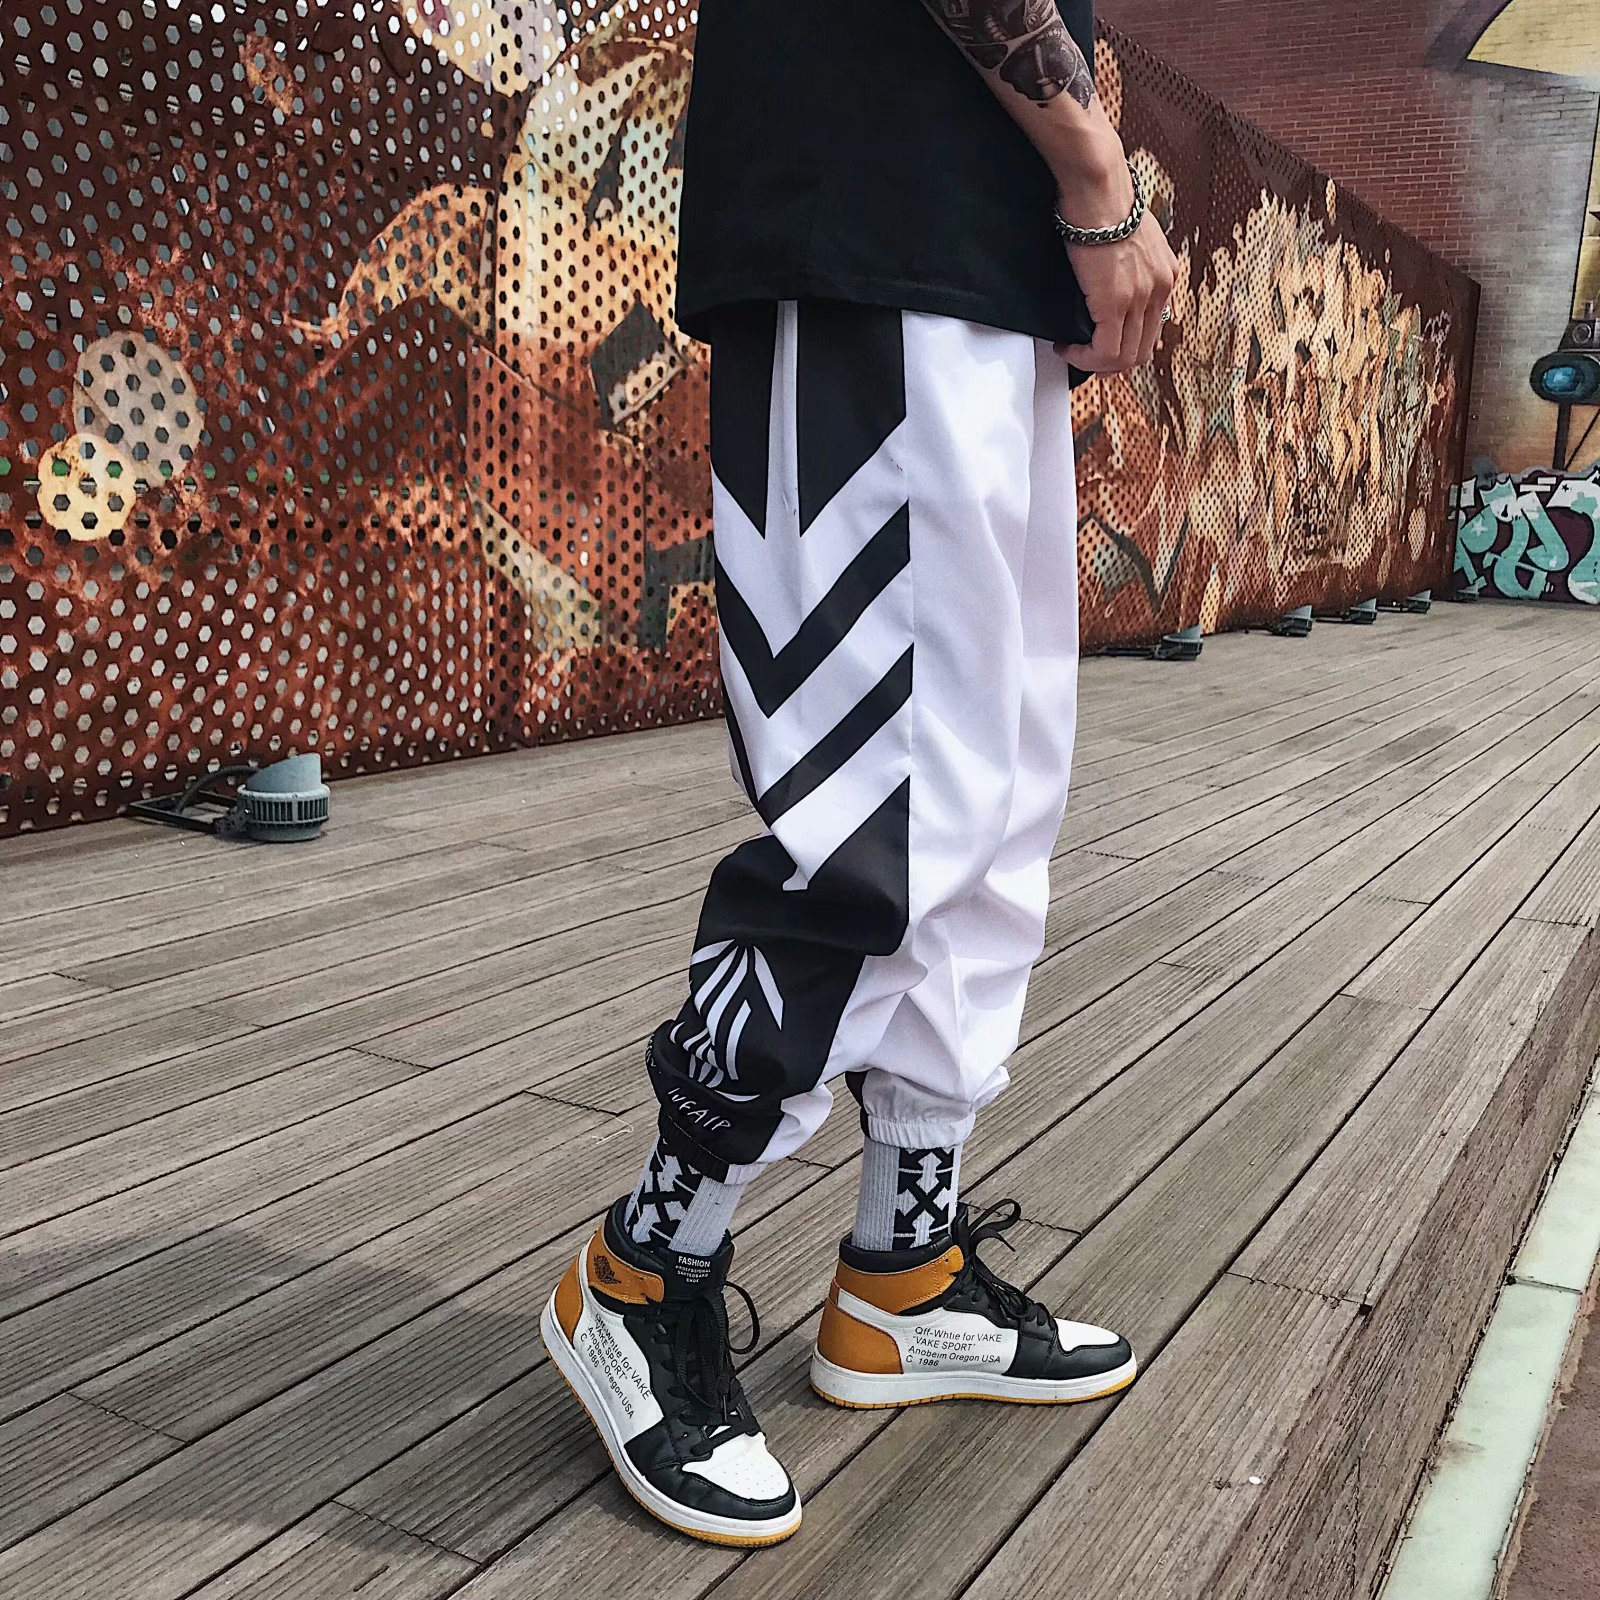 Loldeal Sweatpants Men Plus Size Casual Black White Stripe Printed Fashion Men Pants Hip Hop Pants Harem Pants Trousers